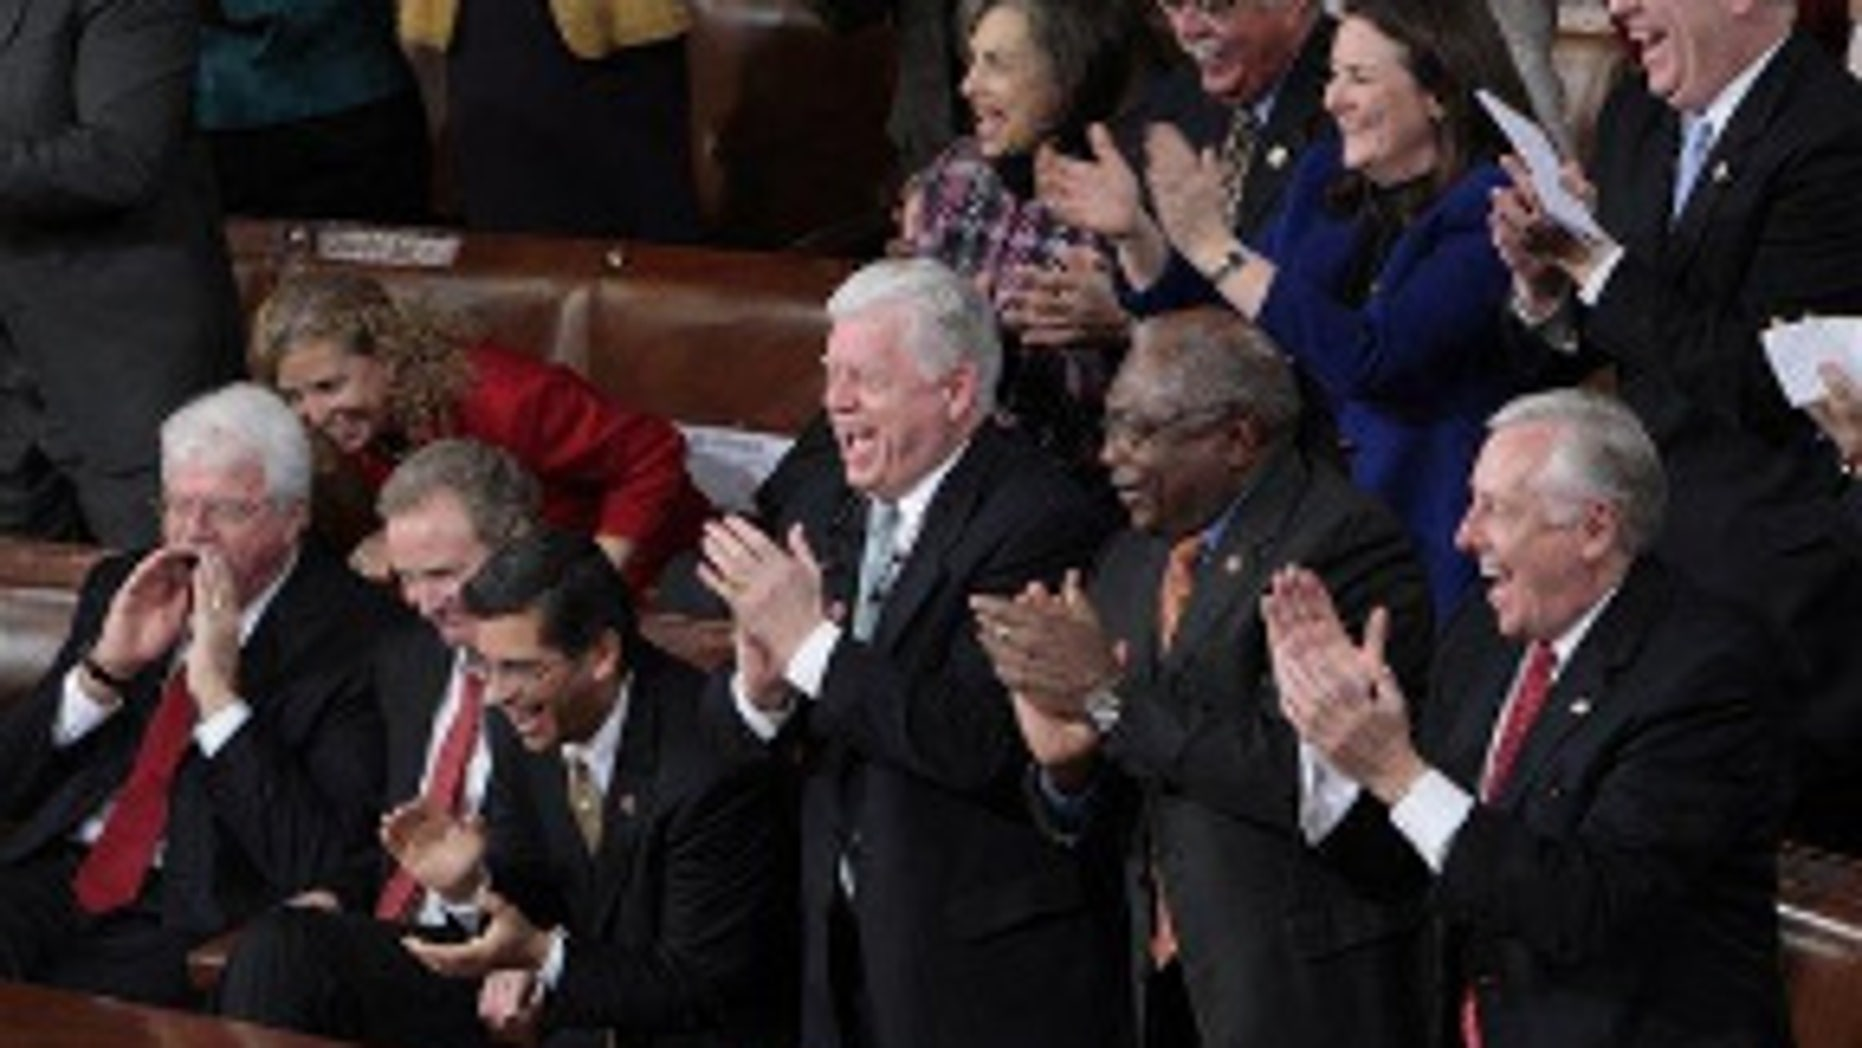 Democrats applaud during President Obama's first State of the Union address. (AP Photo)